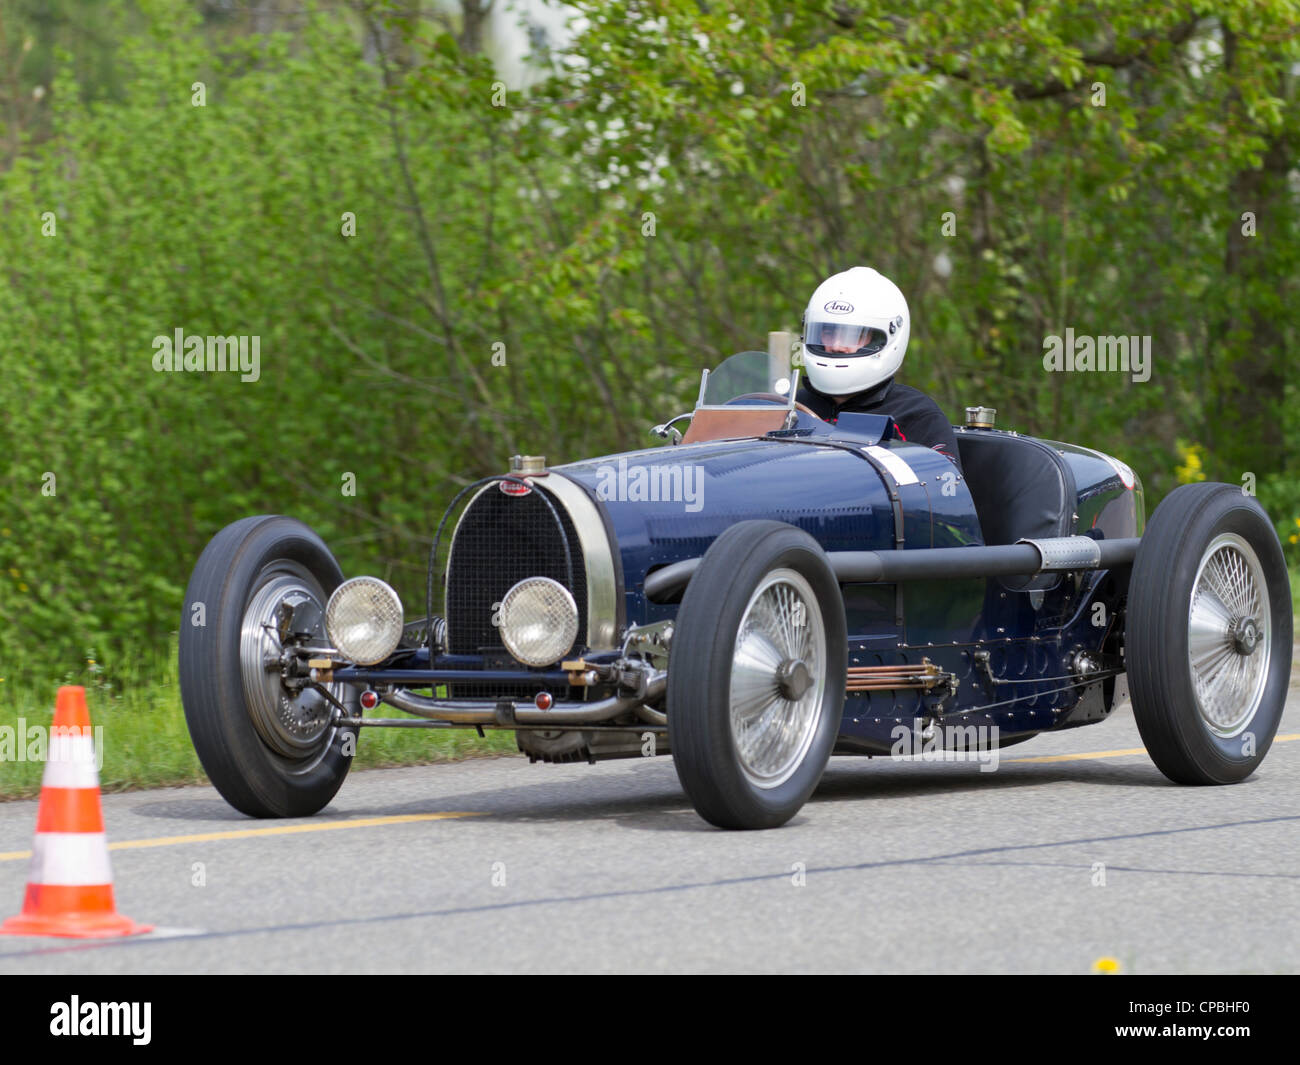 vintage pre war race car bugatti t 59 from 1934 at grand prix in stock photo 48198388 alamy. Black Bedroom Furniture Sets. Home Design Ideas